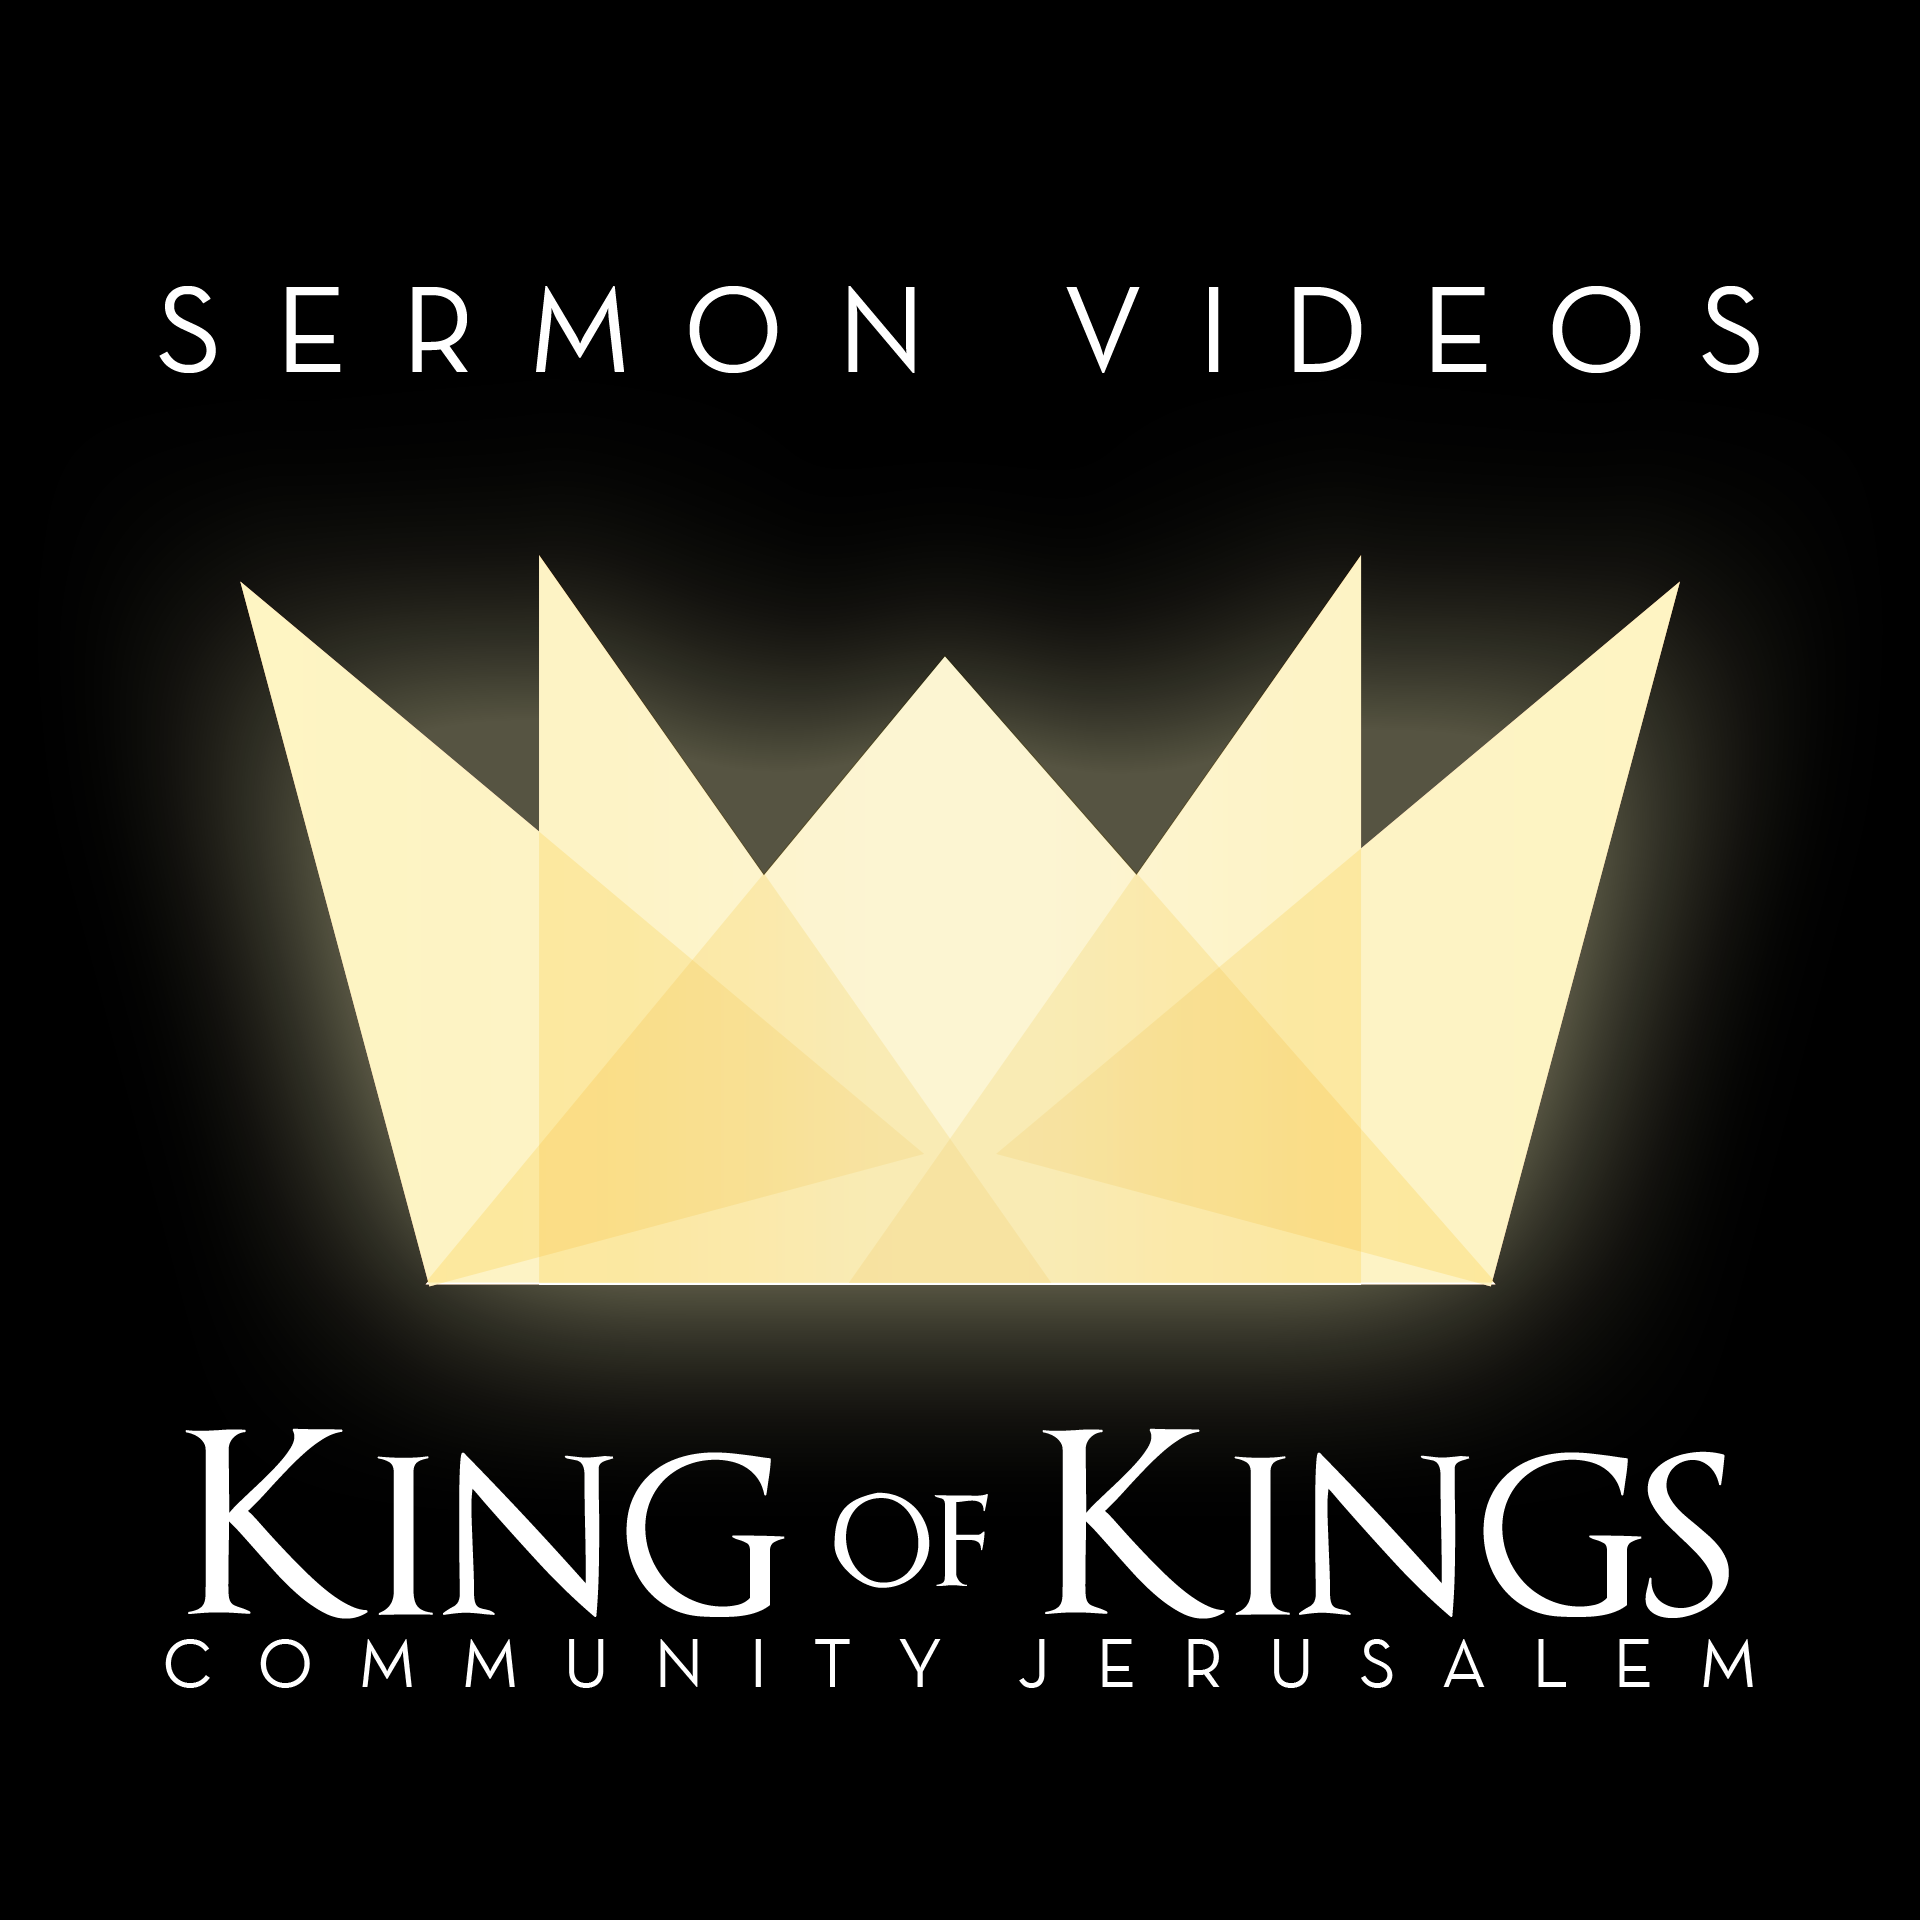 King of Kings Community Jerusalem  (Video)